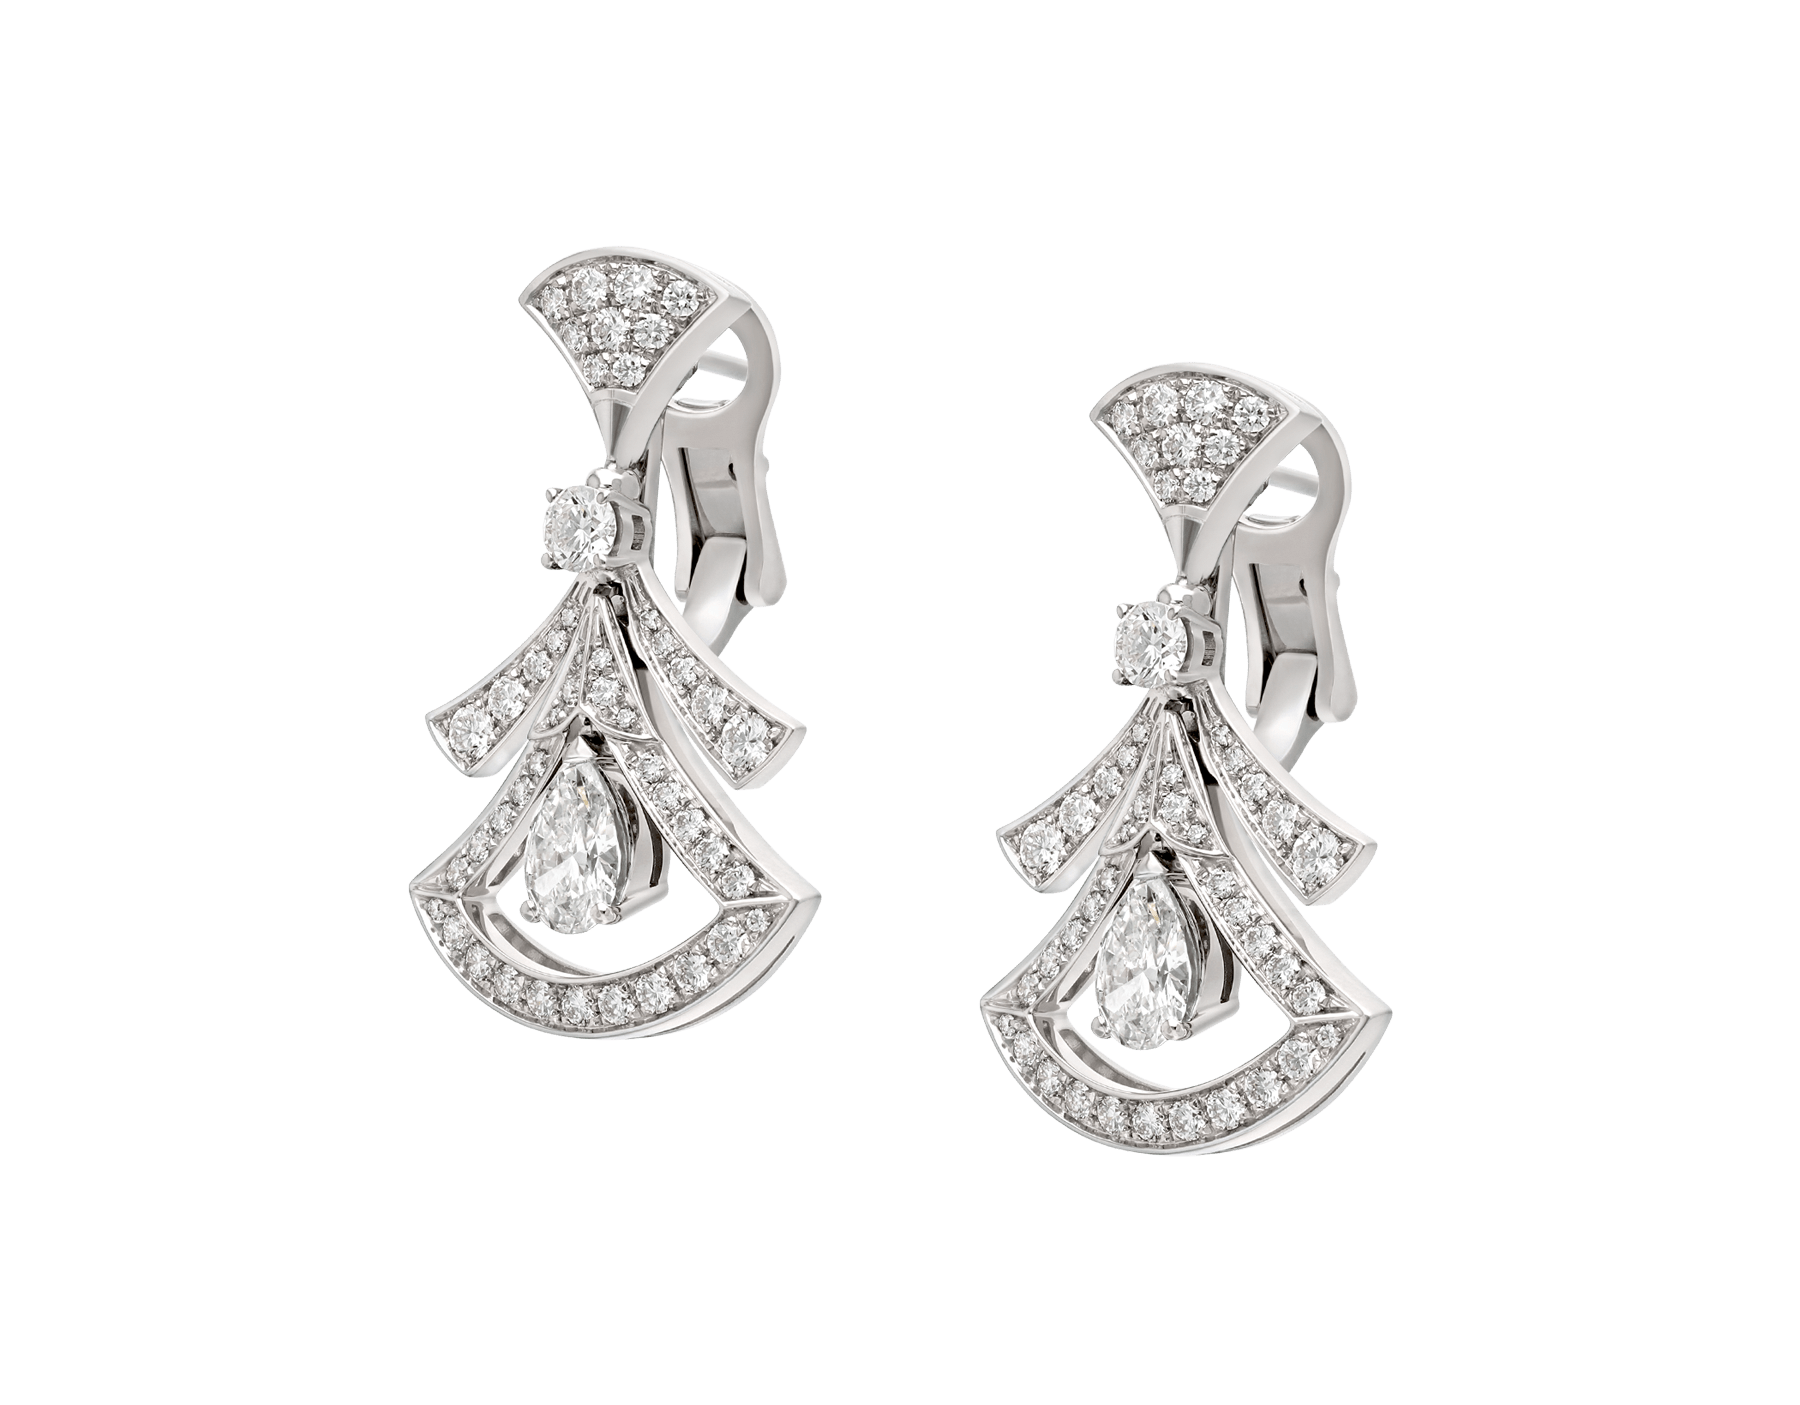 Divas' Dream 18 kt white gold openwork earrings set with two pear-shaped diamonds (1.40 ct), two round brilliant-cut diamonds (0.30 ct) and pavé diamonds (1.18 ct) 358221 image 2